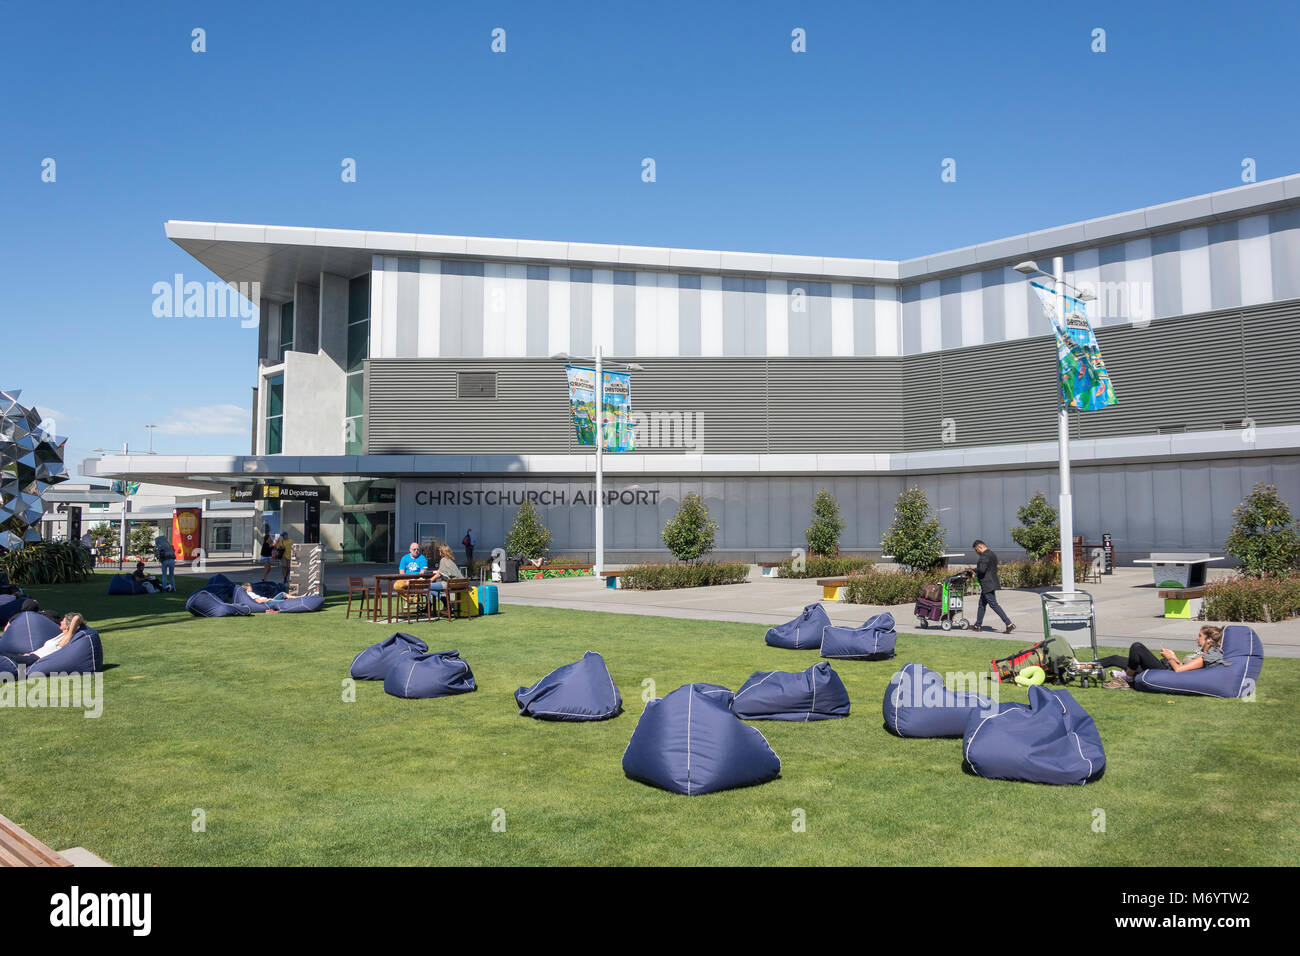 Lawn with bean bags and Departures Terminal at Christchurch Airport, Harewood, Christchurch, Canterbury, New Zealand - Stock Image